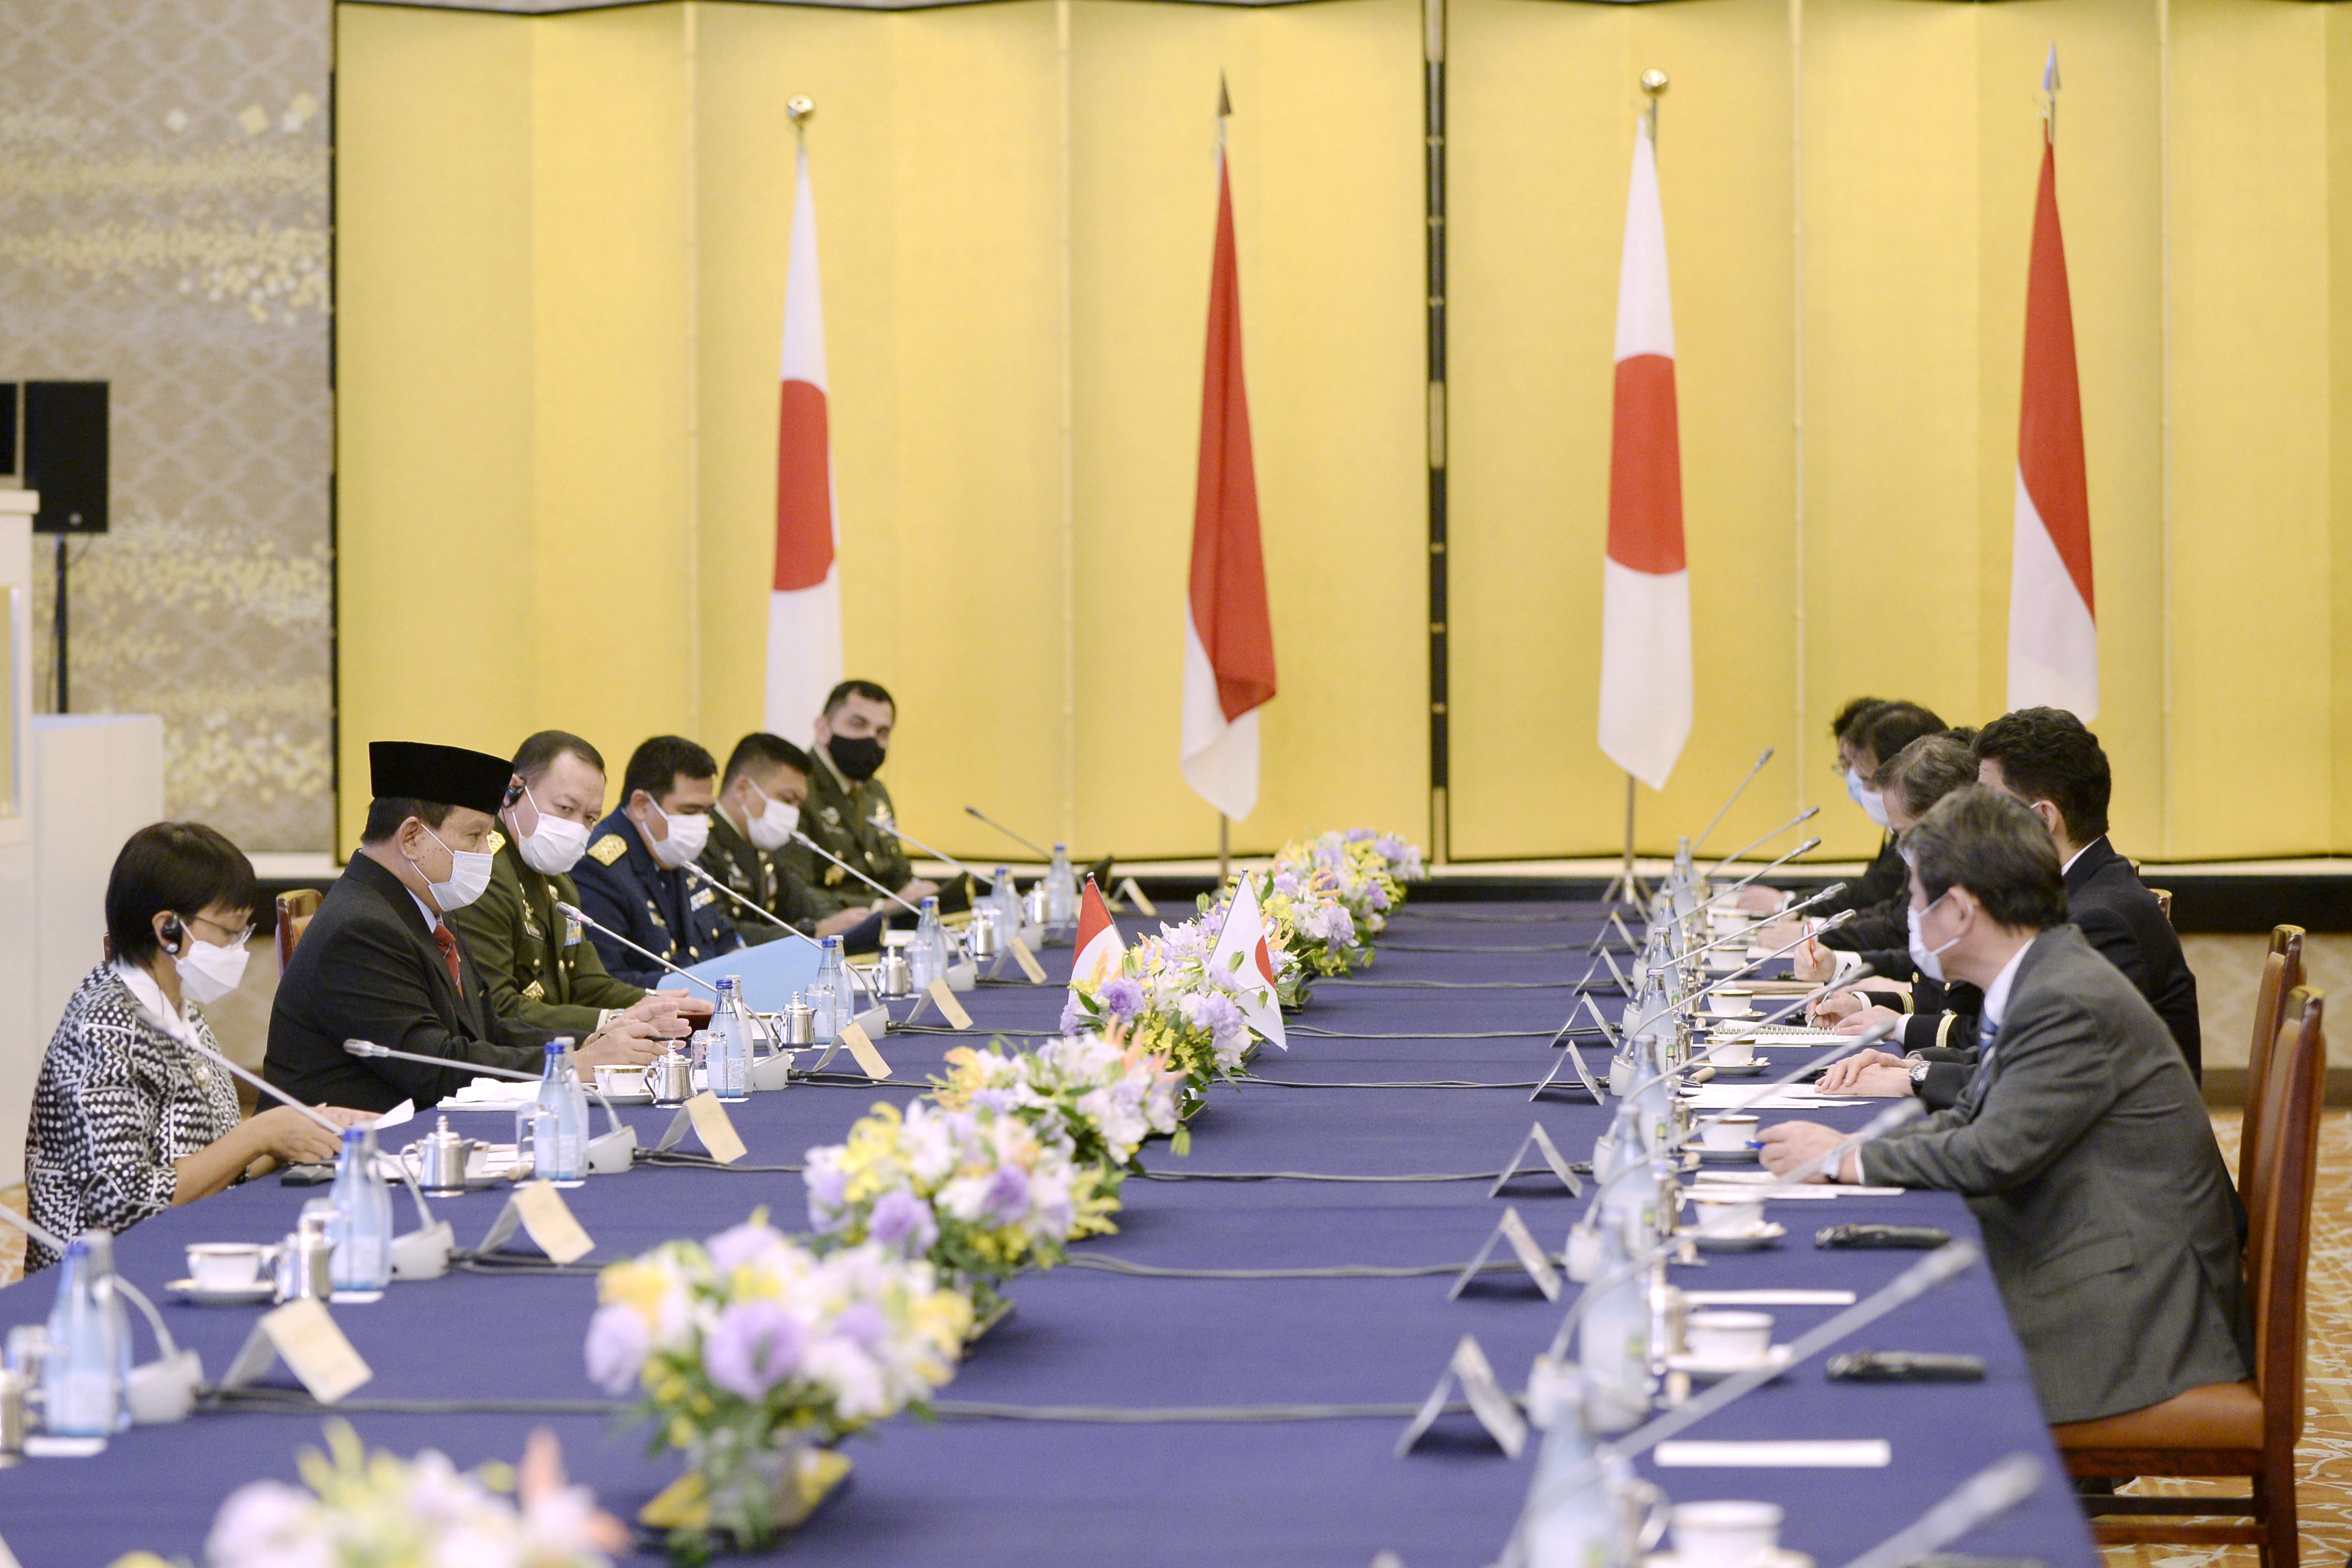 Indonesian Foreign Minister Retno Marsudi and Defense Minister Prabowo Subianto speak with Japanese Foreign Minister Toshimitsu Motegi and Defense Minister Kishi Nobuo during the